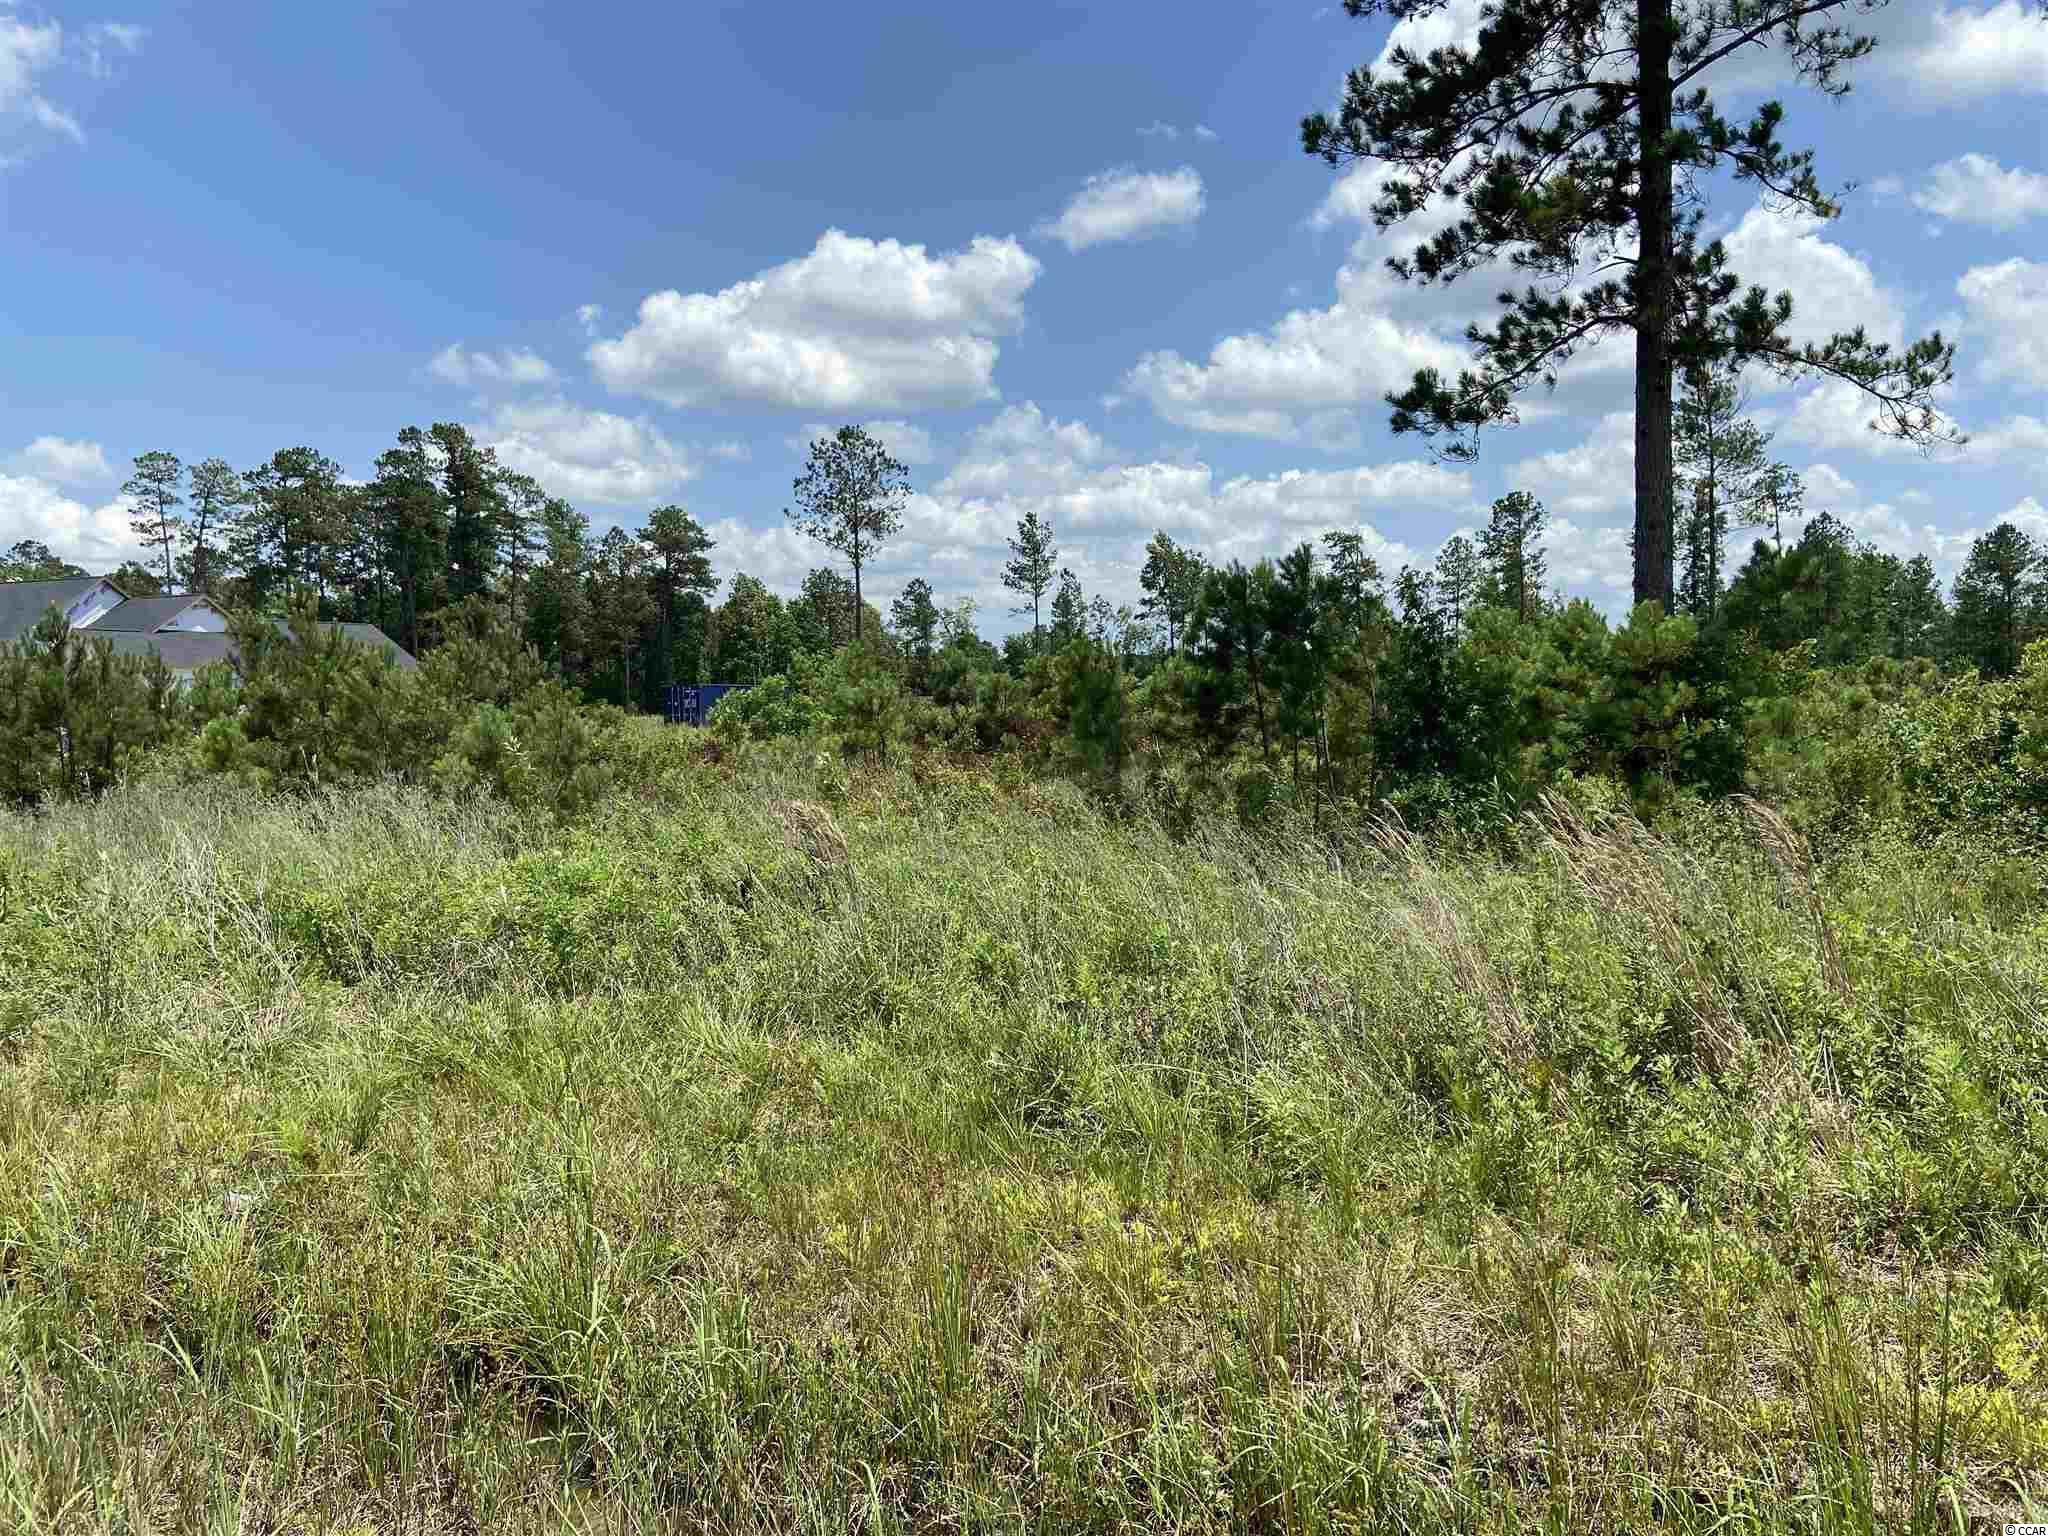 Great lot and location! Perfect place to build your custom dream home! Nice piece of land located within 20 minutes of the beach without the hassle and fees of an HOA.